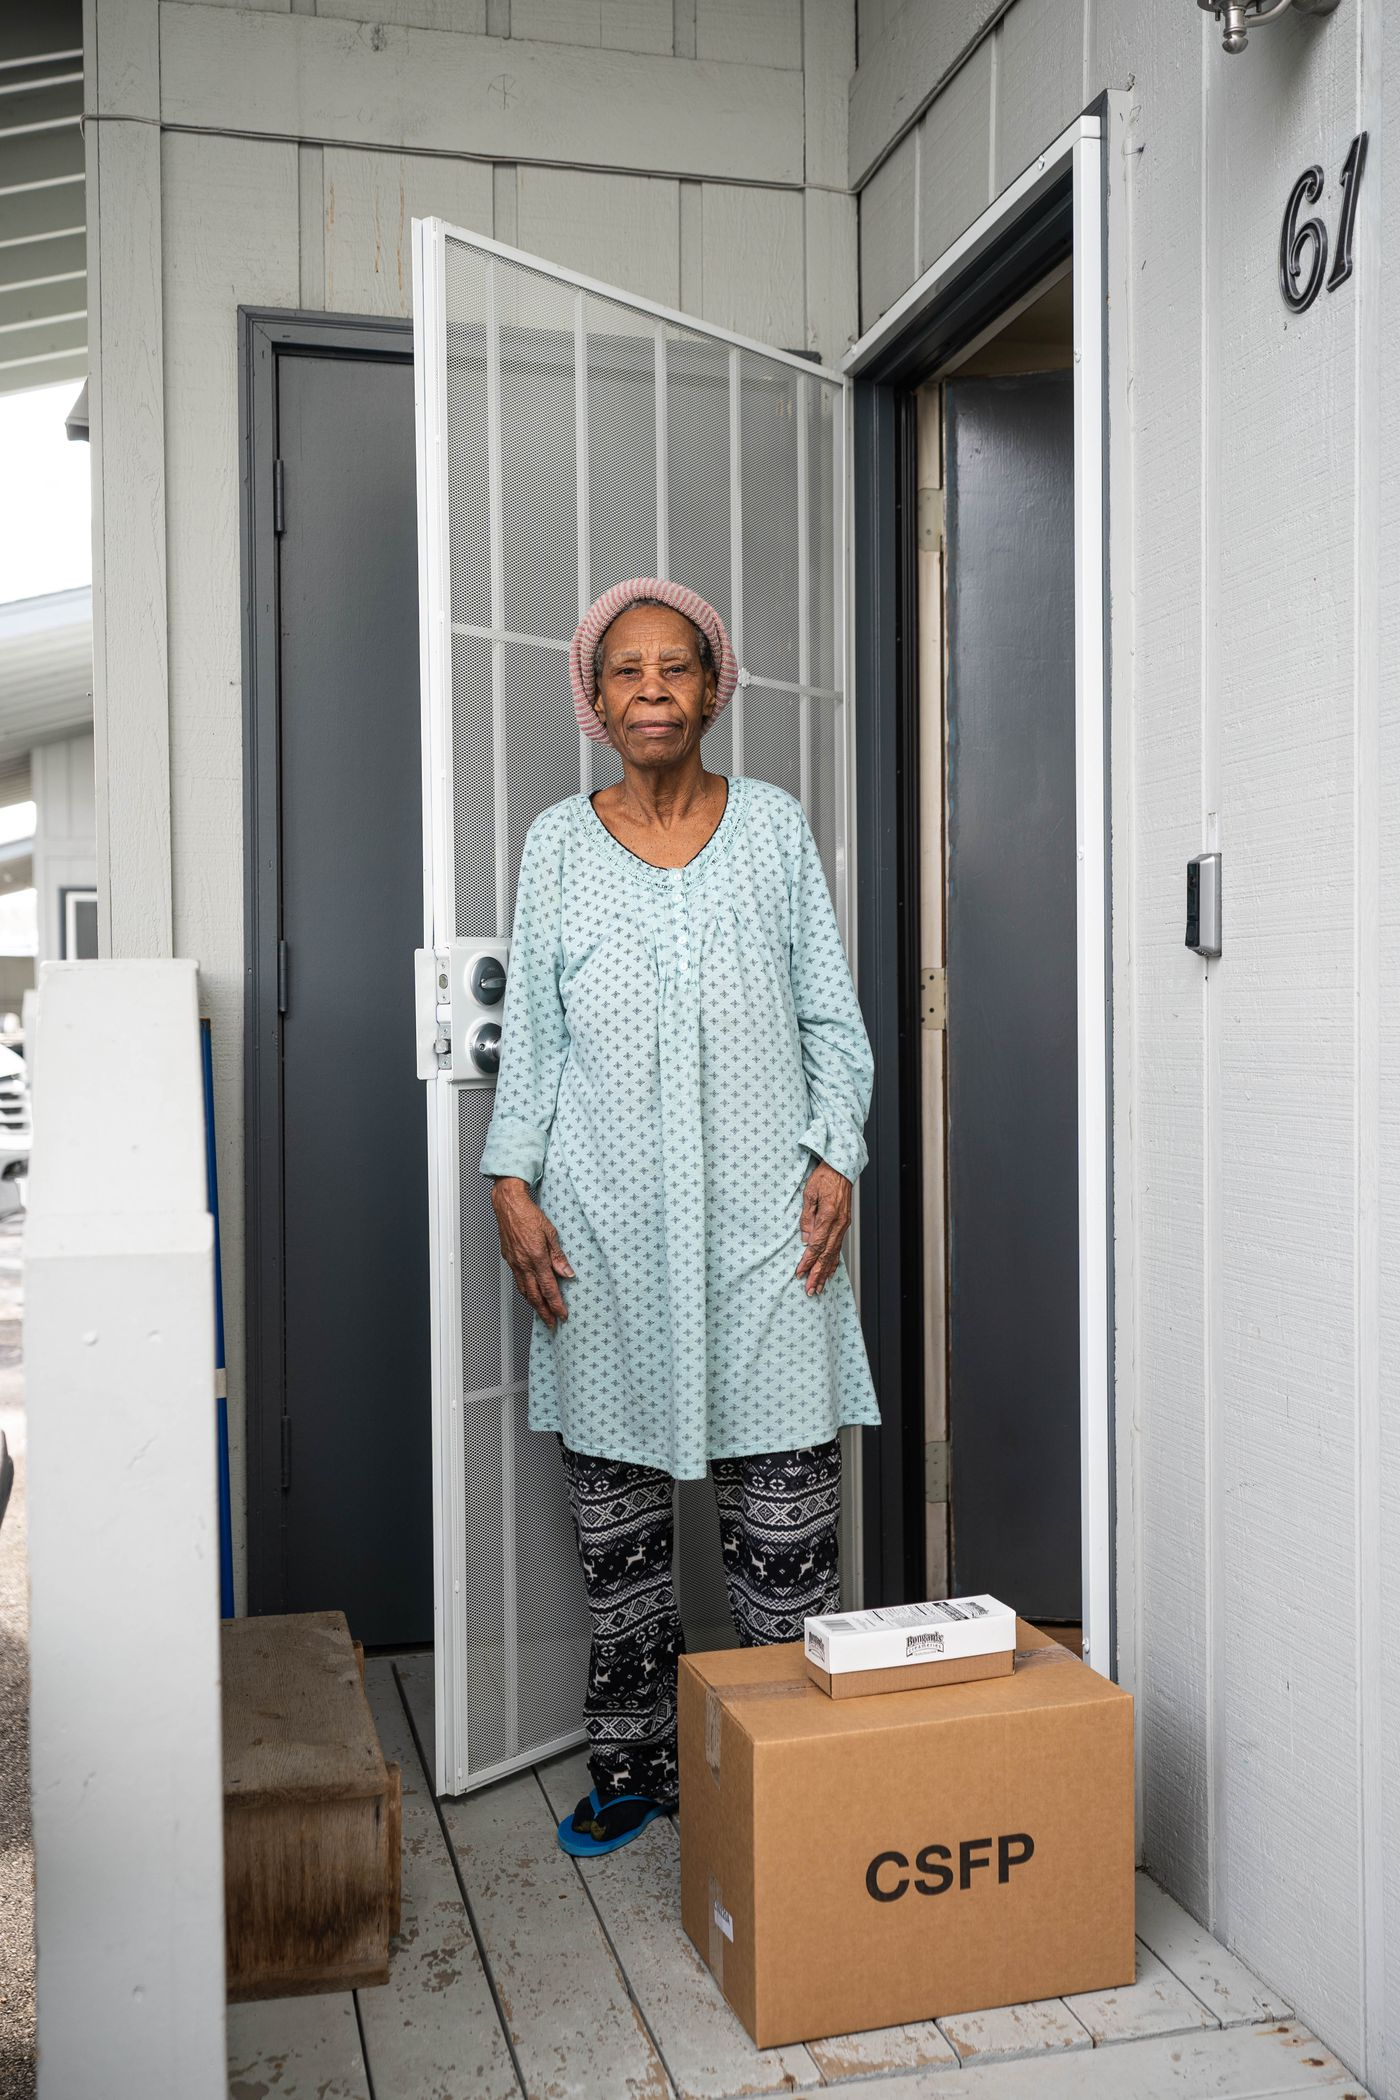 MARCH 27. Angela Young, 83, receives a box of food from the Food Bank of Alaska. The non-profit has been partnering with businesses to deliver some food to seniors who are unable to access their normal distribution sites because of restrictions put in place to slow the coronavirus pandemic. (Loren Holmes / ADN)